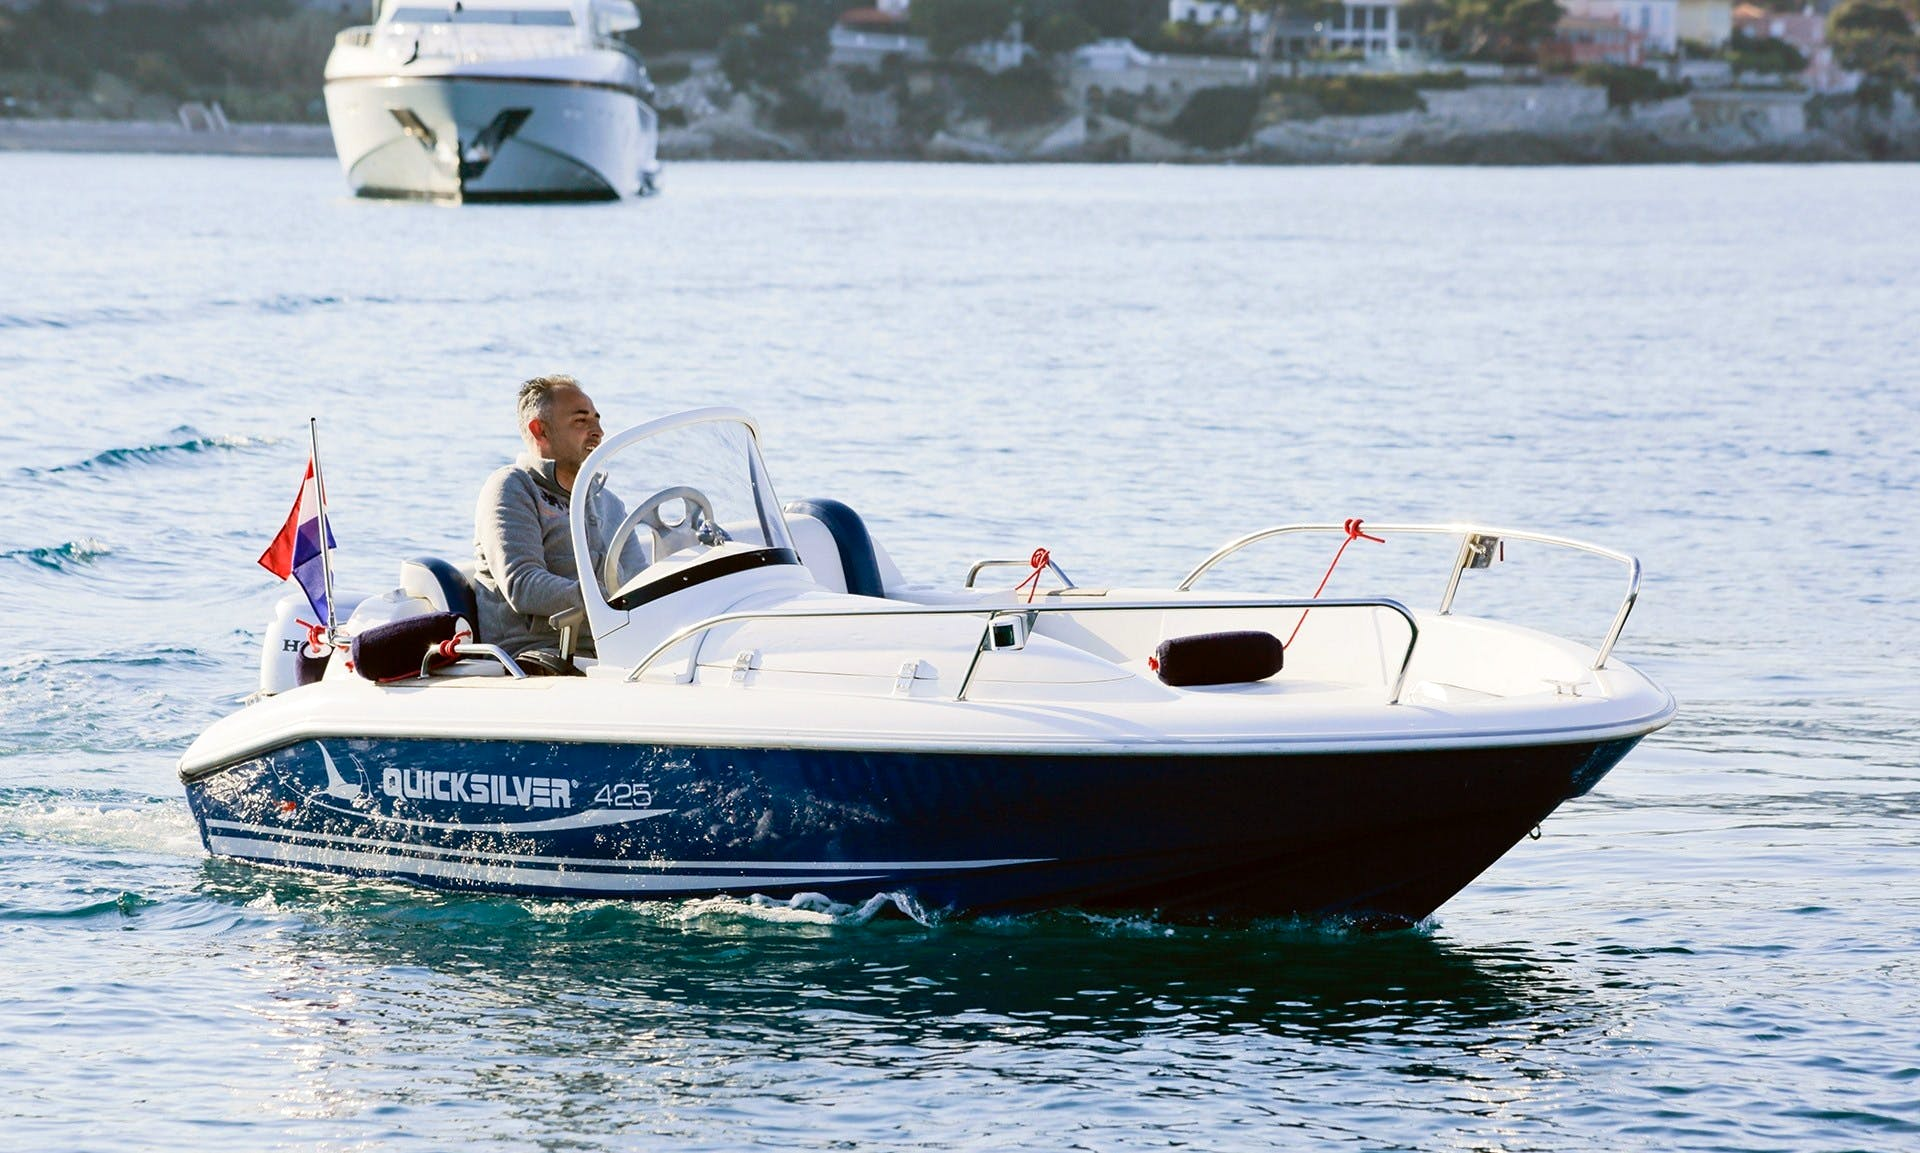 Rent 14' Quicksilver Powerboat in Saint-Jean-Cap-Ferrat, France